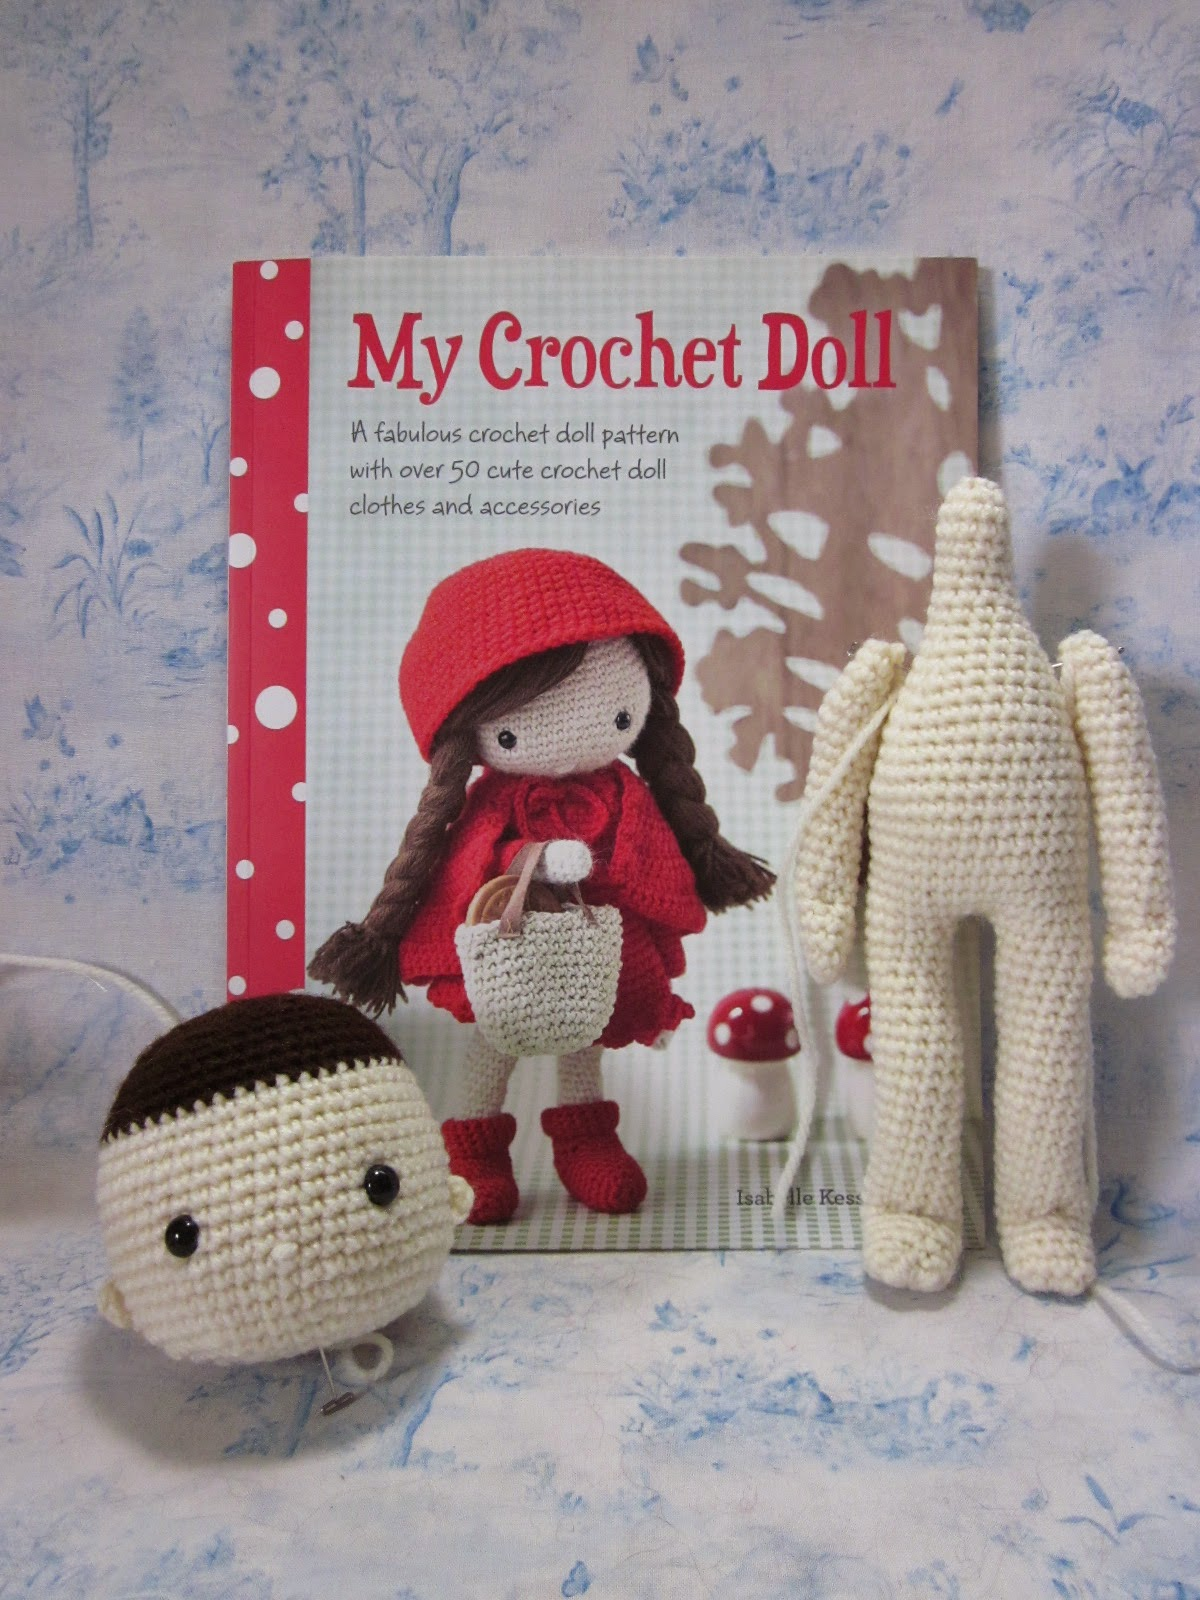 Crocheting By Hand : By Hook, By Hand: My Crochet Doll by Isabelle Kessedjian